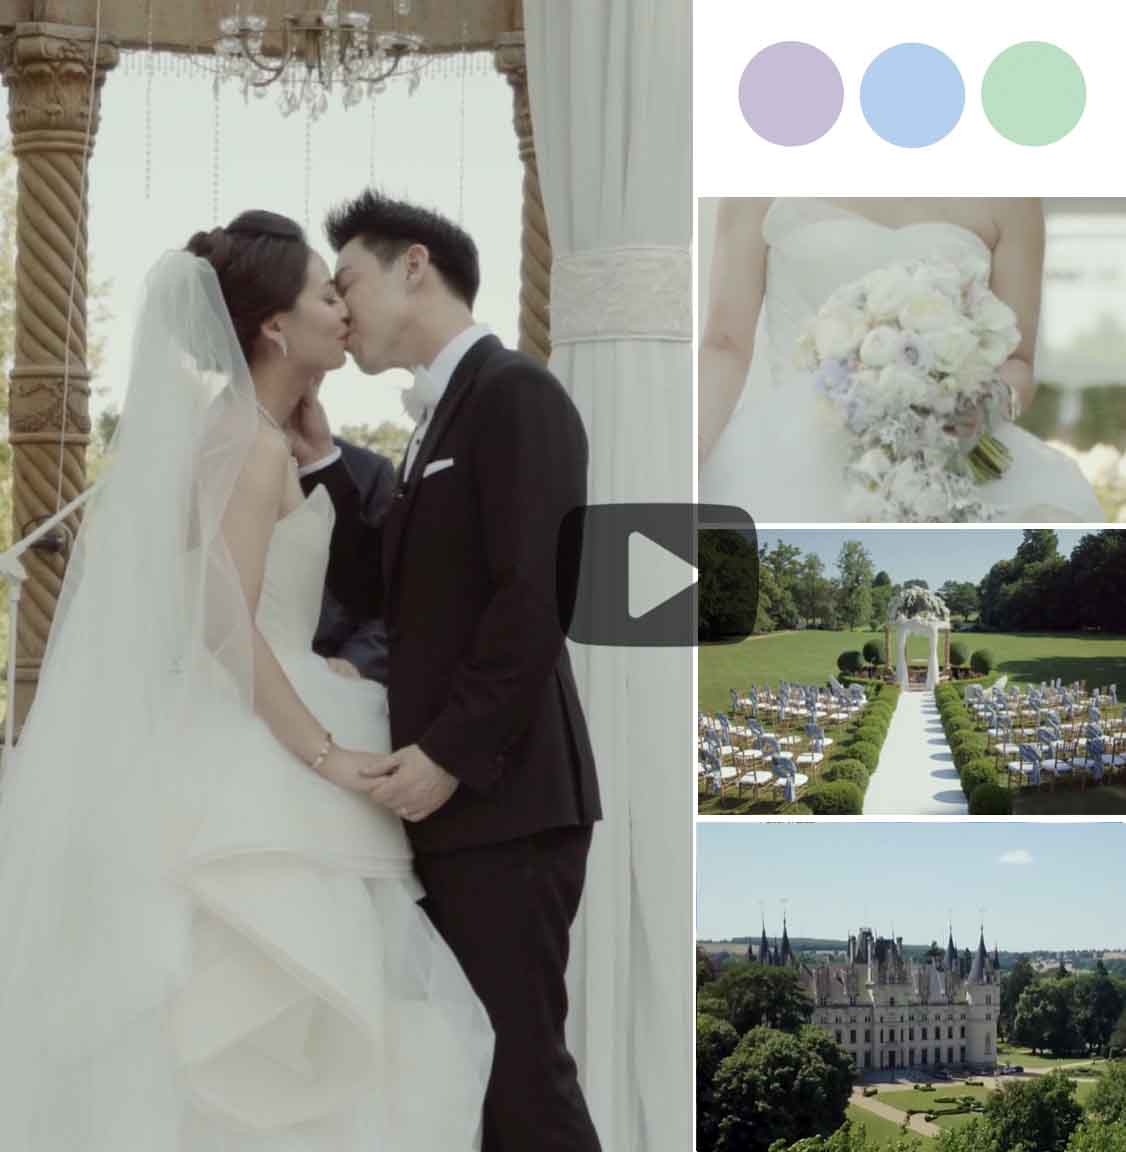 The Groom Arrived Via Helicopter to this Breathtaking French Cheateau Wedding [Chateau Challain]